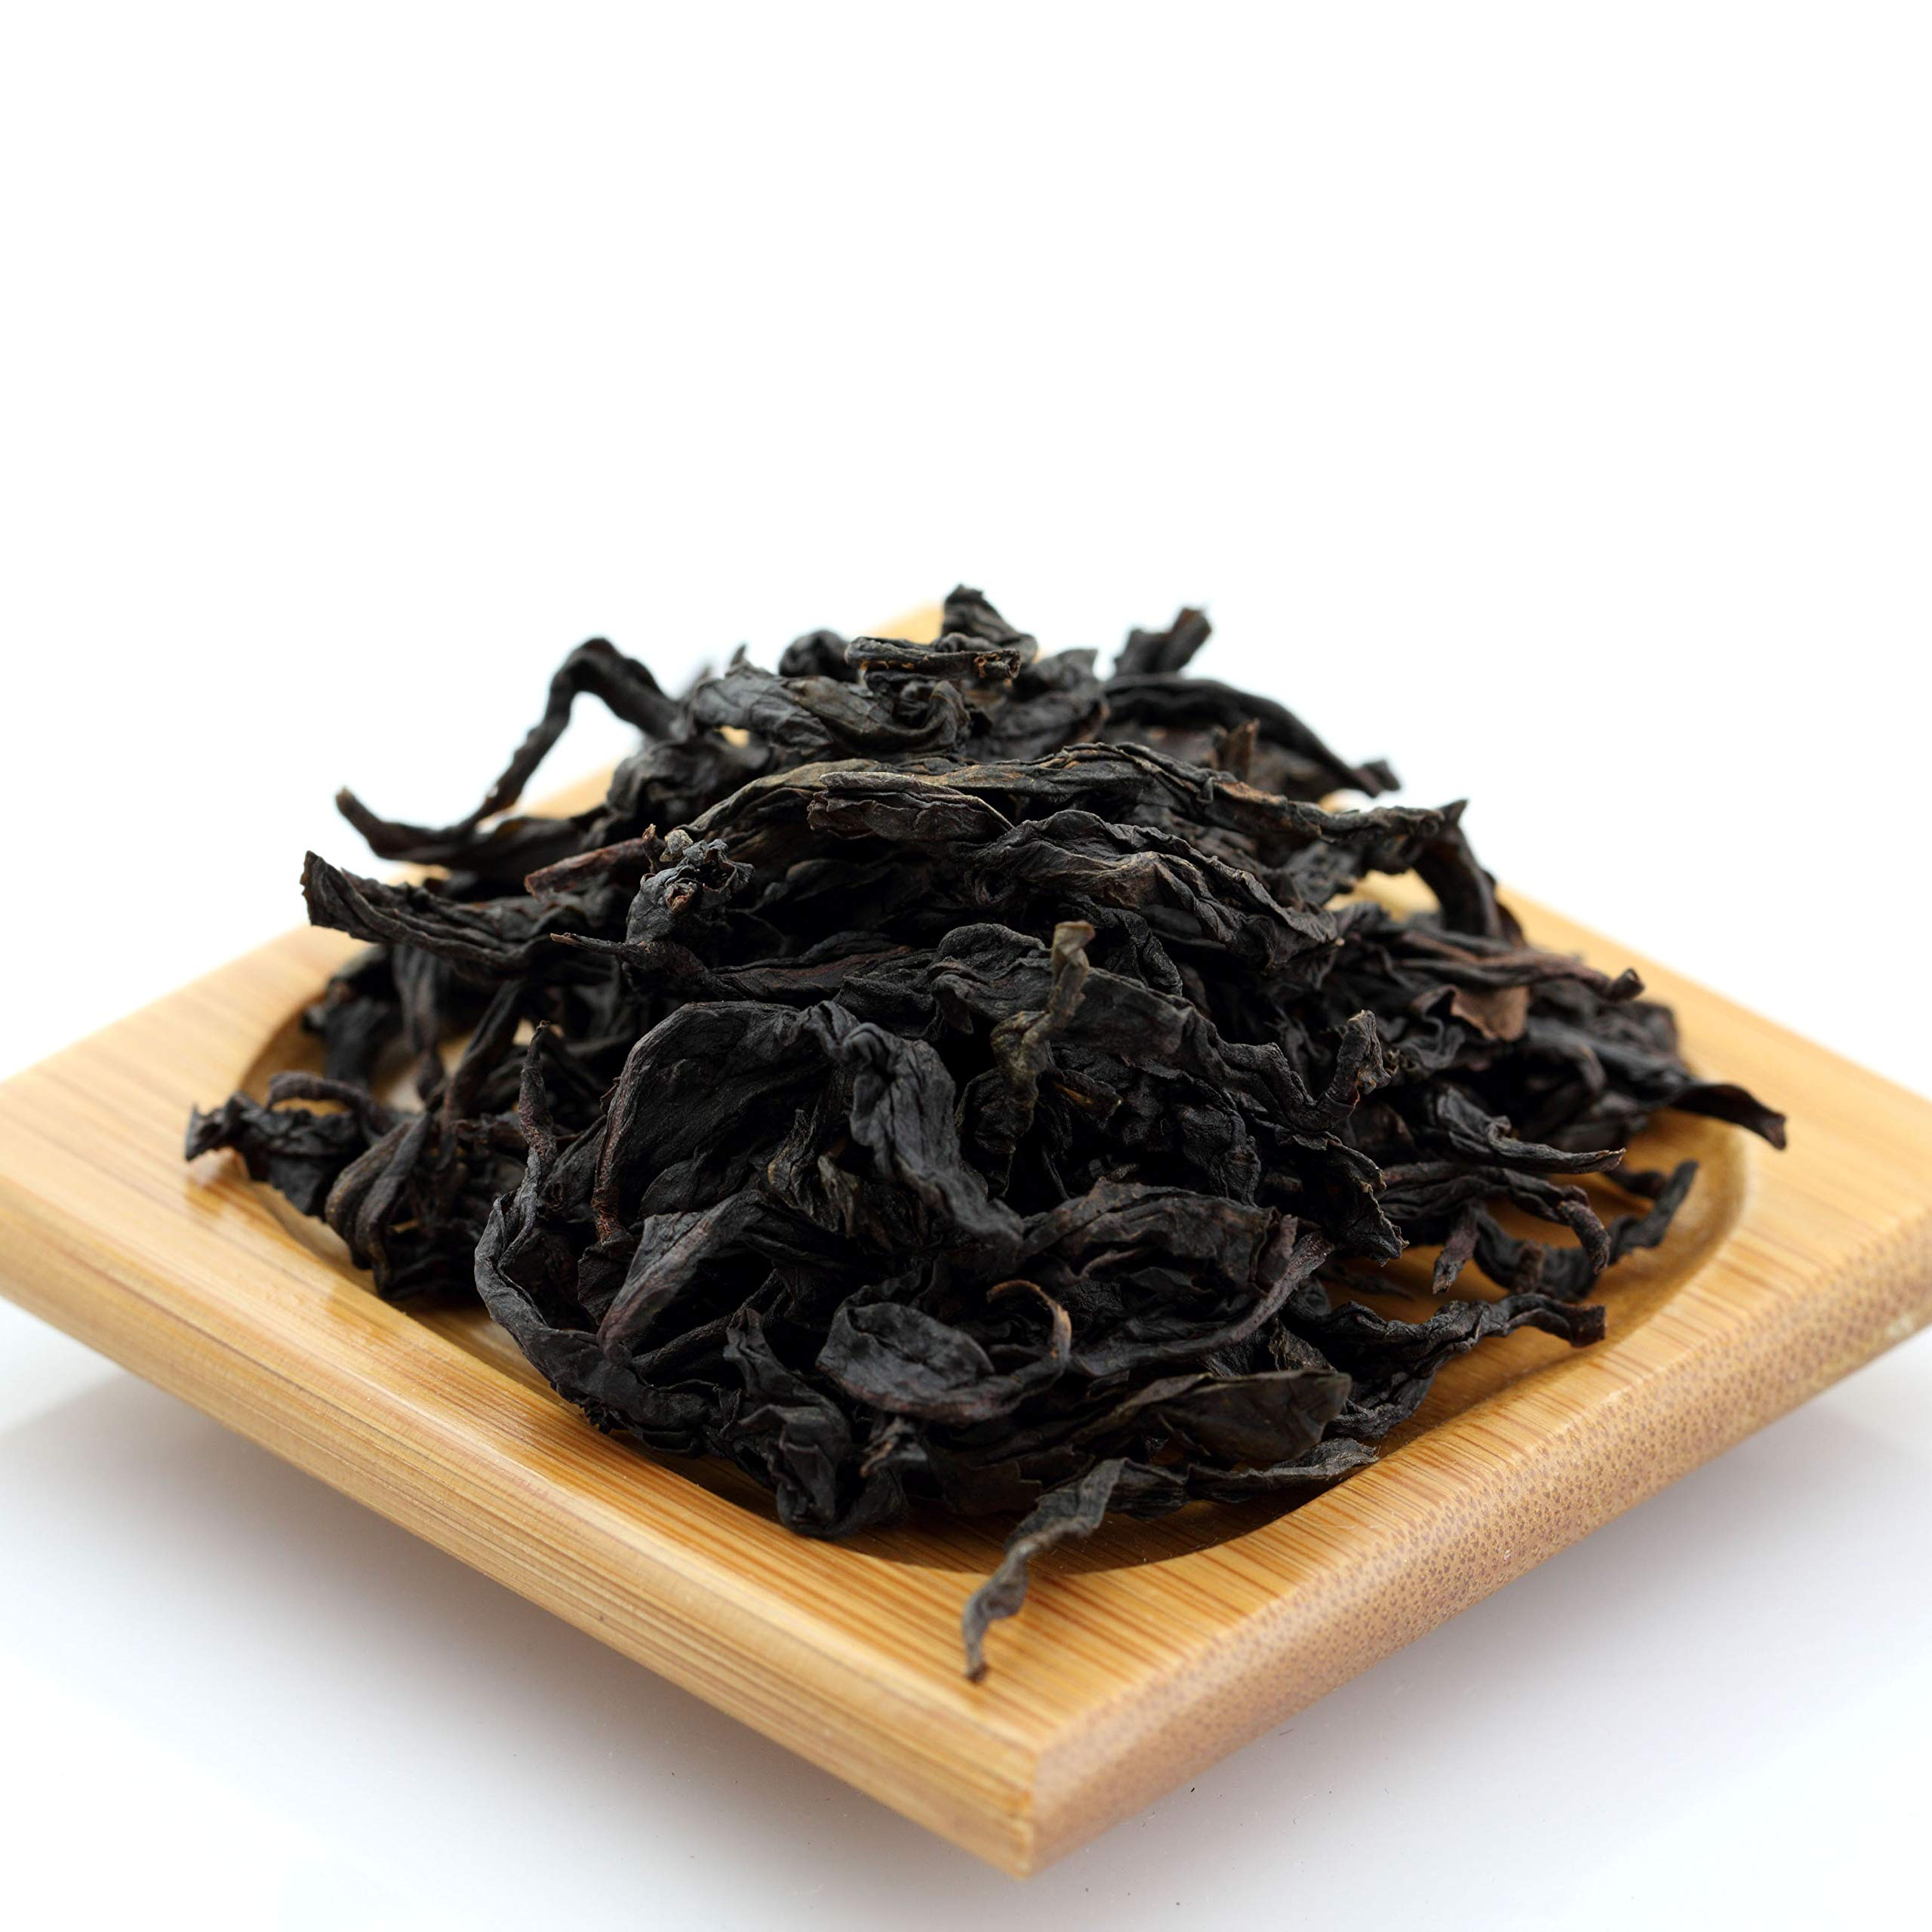 GOARTEA® 100g (3.5 Oz) Organic Premium Da Hong Pao Dahongpao Big Red Robe Wuyi Mountain Chinese Oolong Tea by GOARTEA